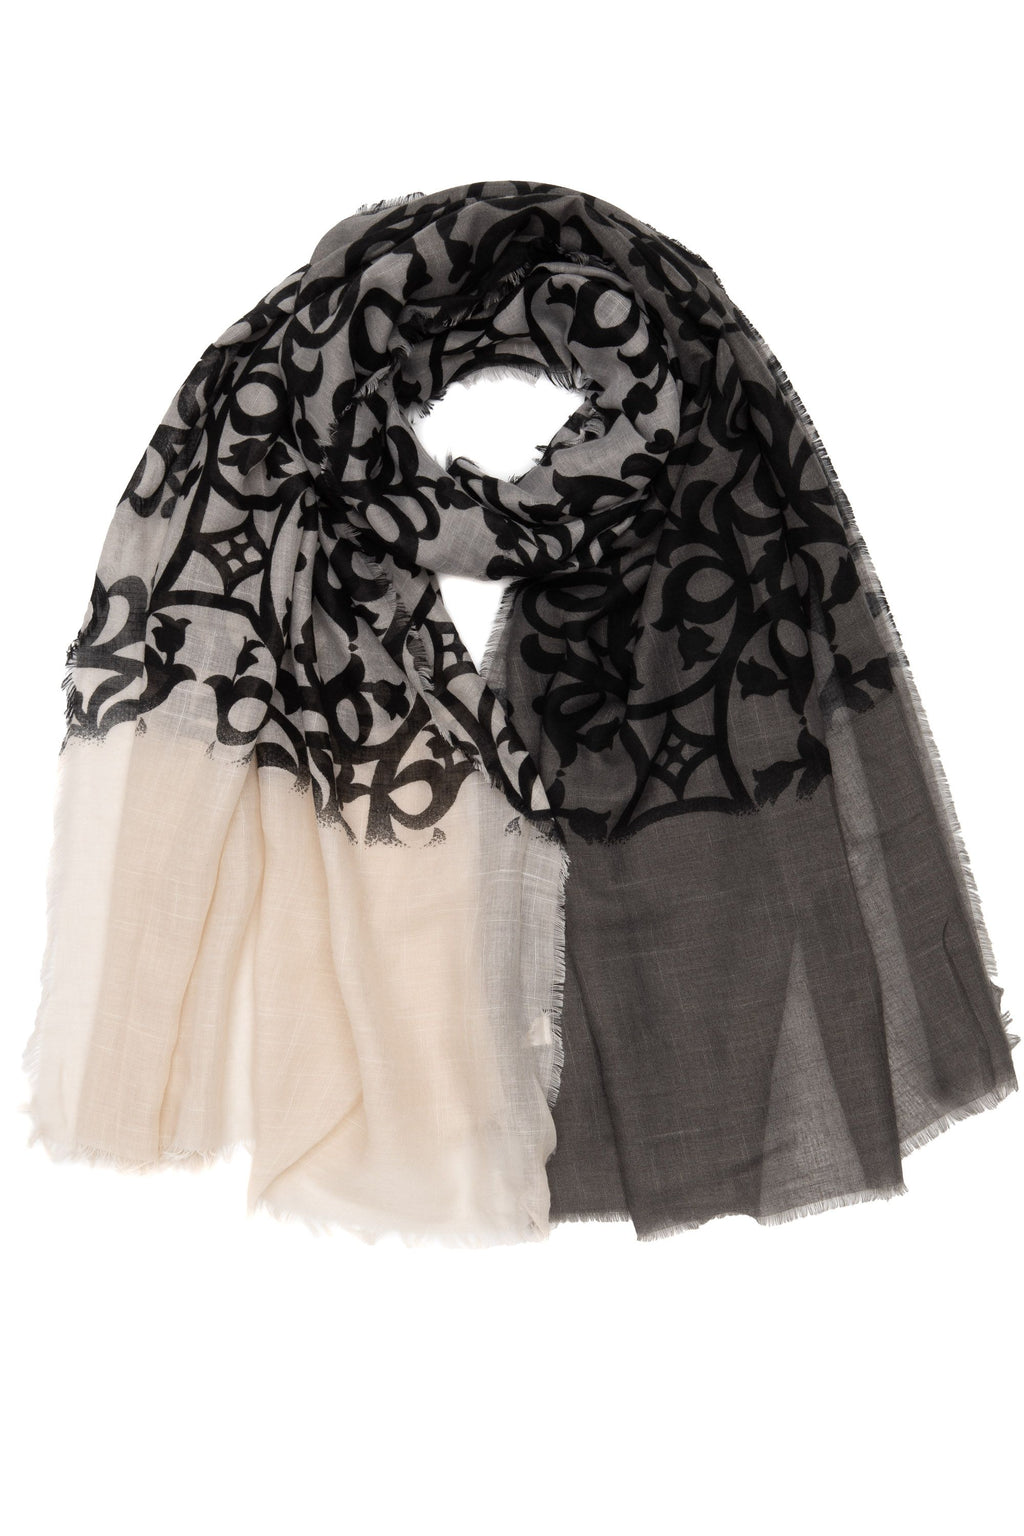 Ivory and Black Patterned Scarf